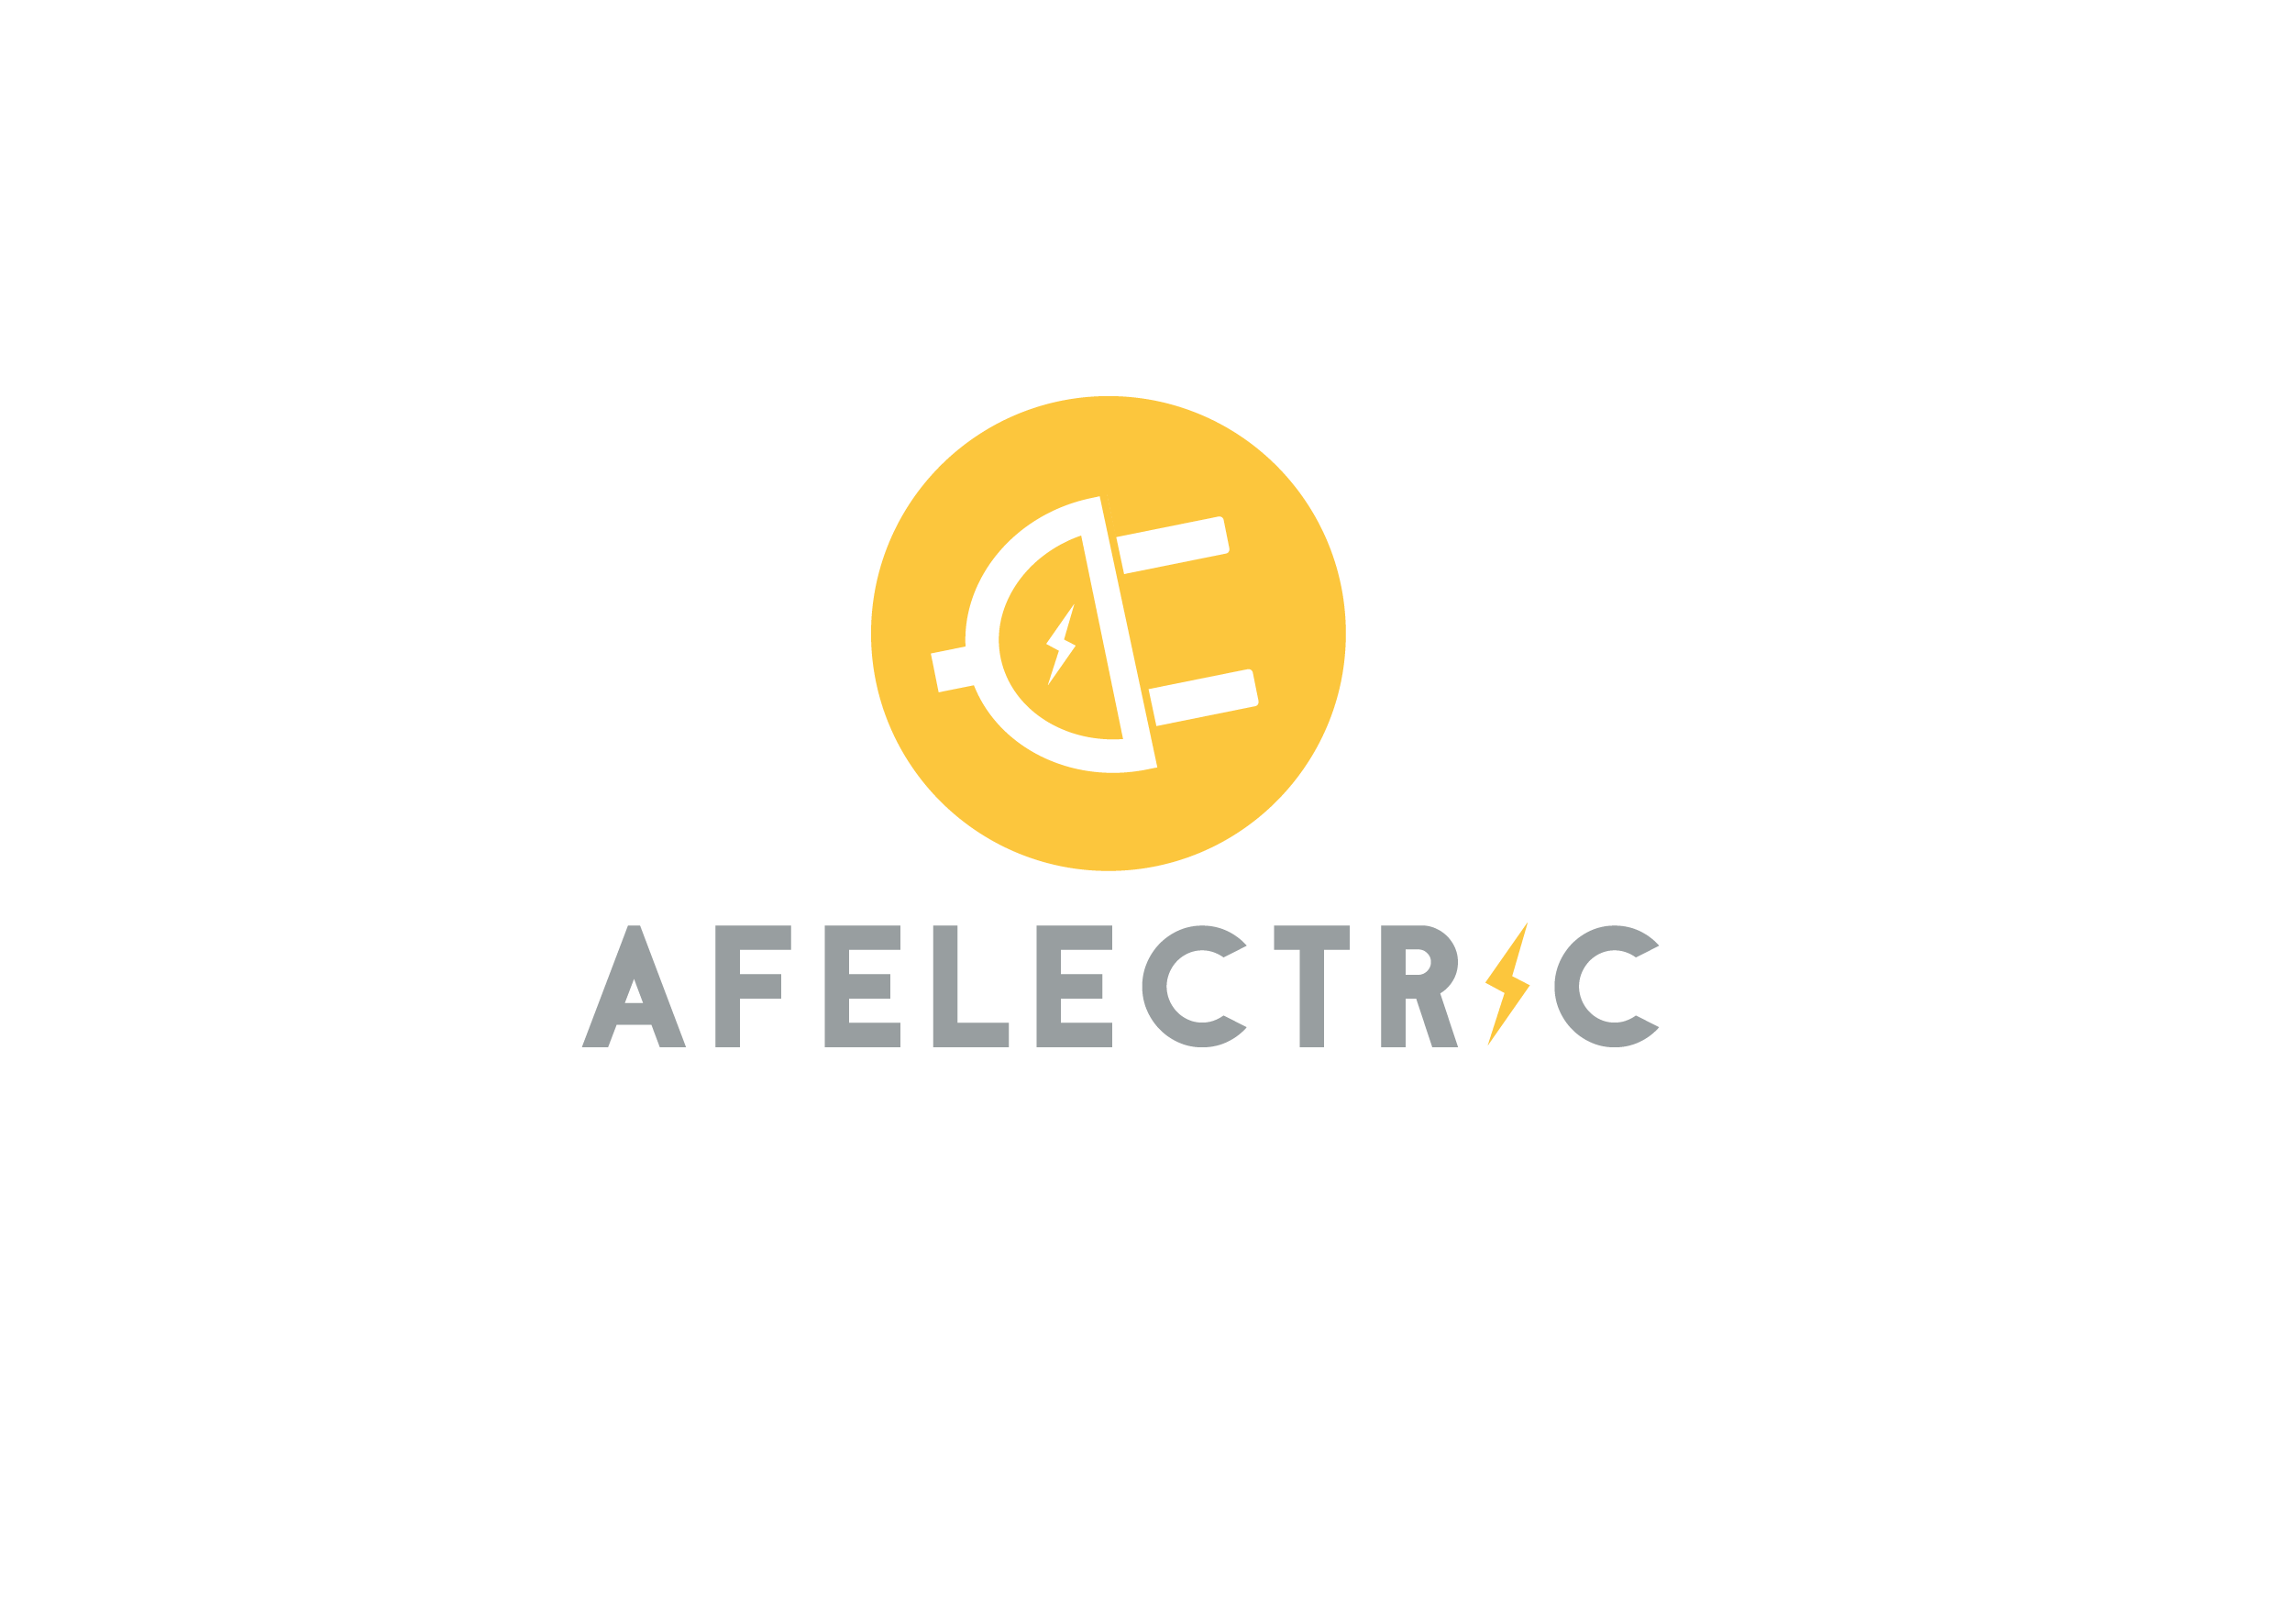 Afelectric